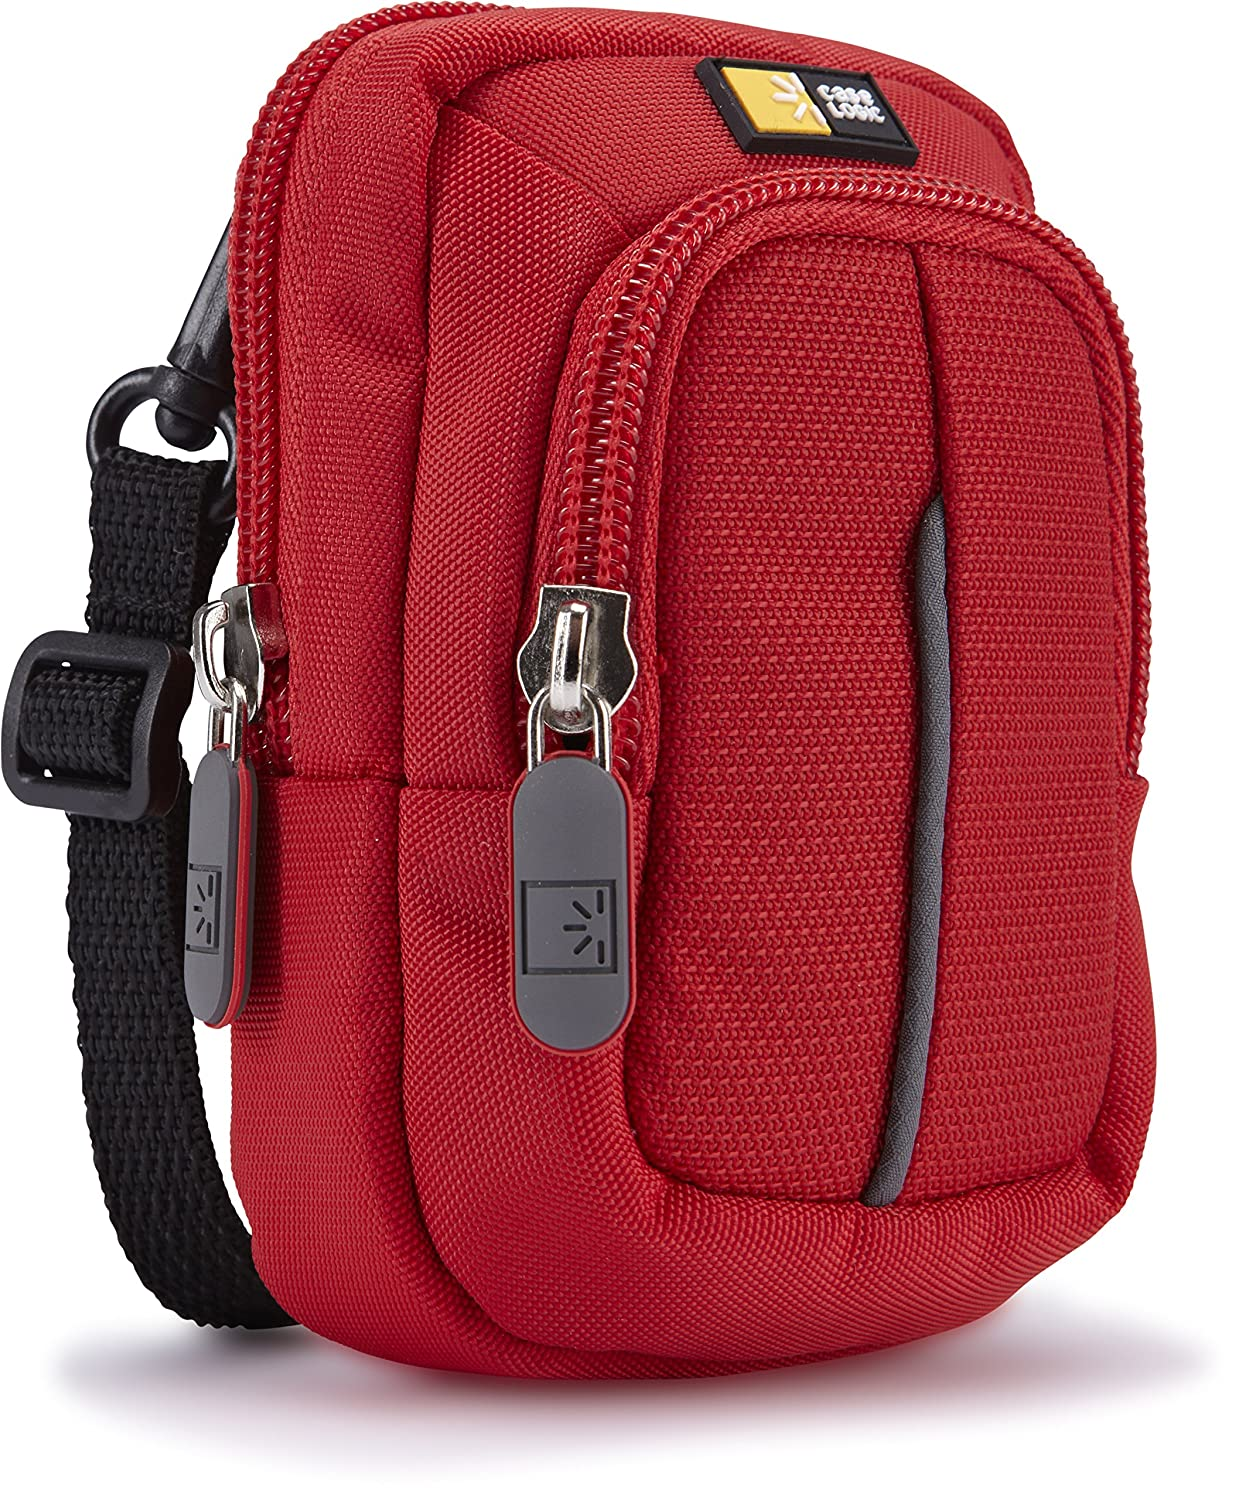 Case Logic DCB-302 Compact Camera Case, Red Caselogic DCB-302Red